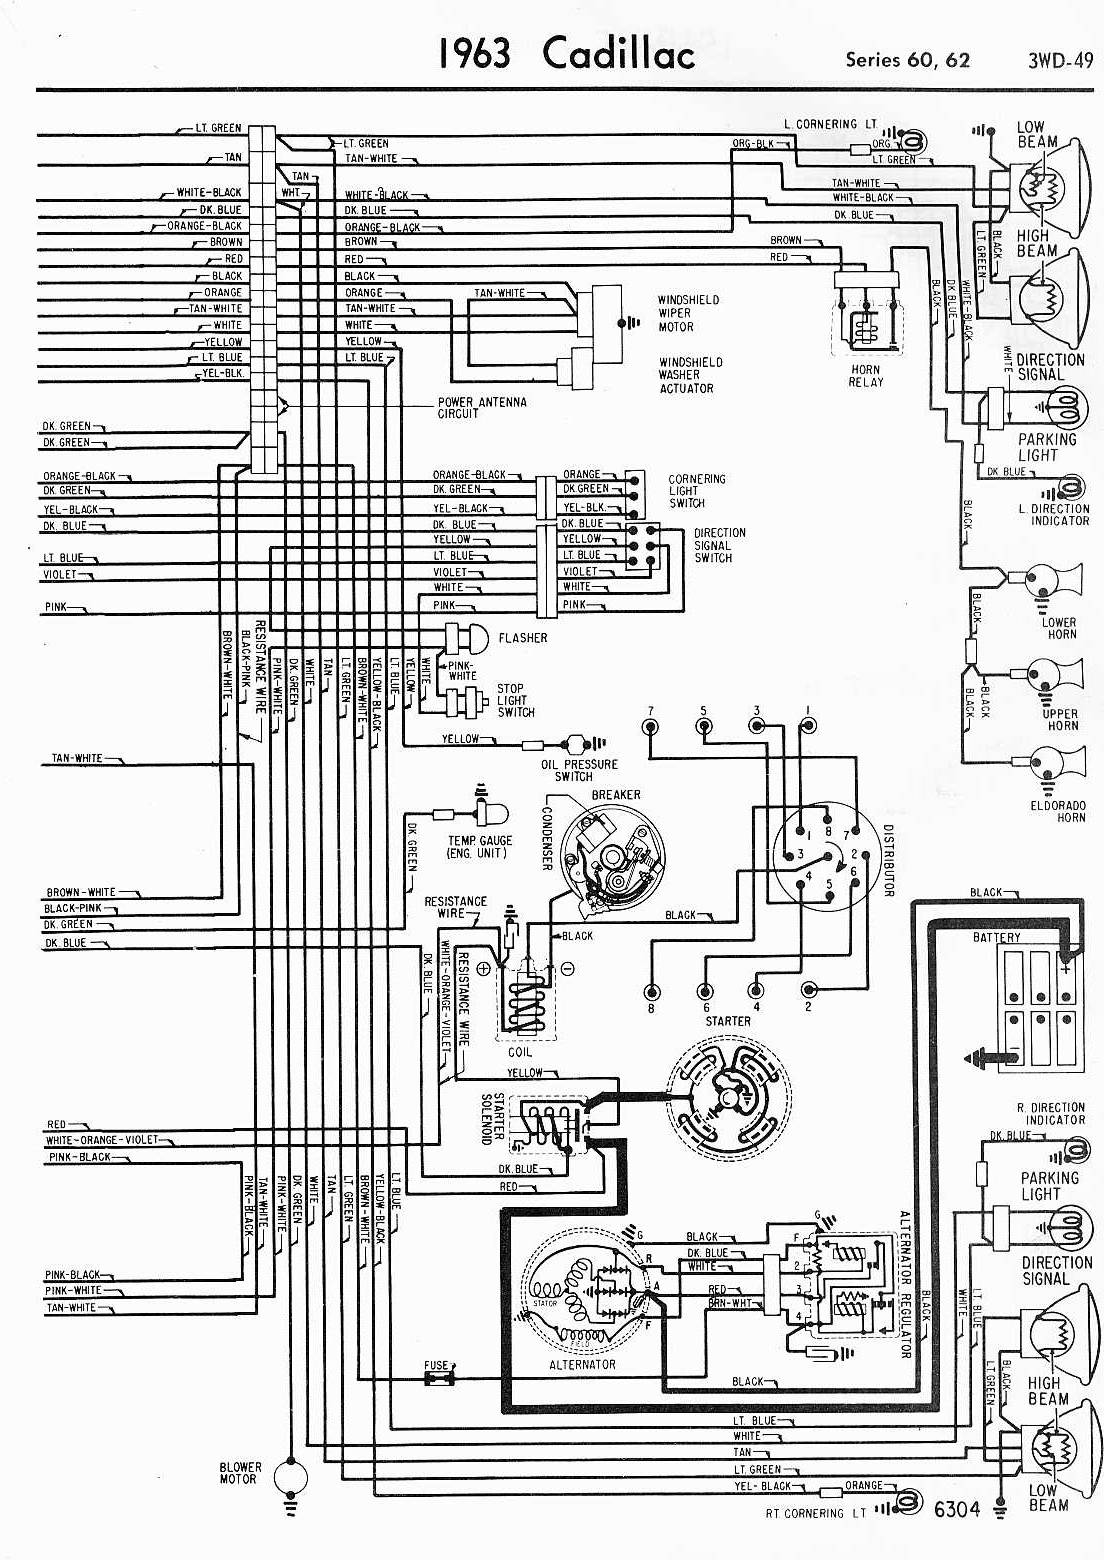 Cadillac Car Manuals Wiring Diagrams Pdf Fault Codes Download